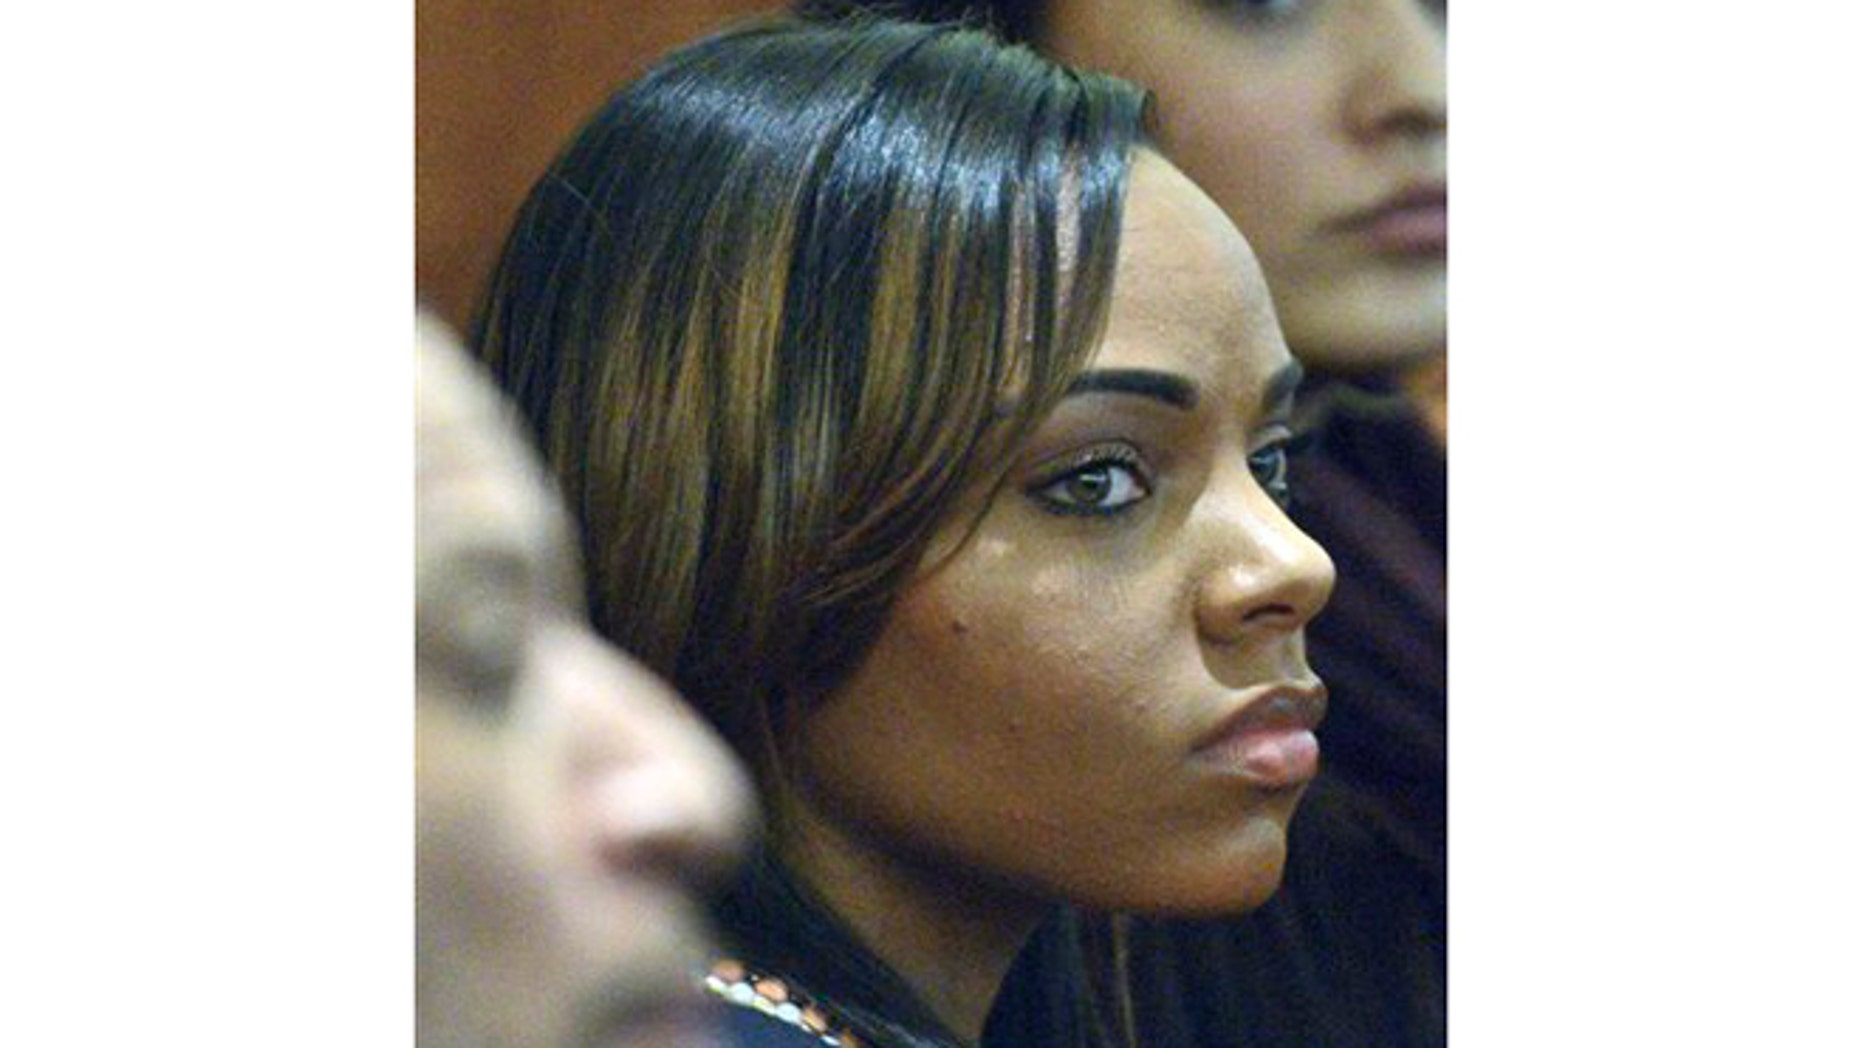 In this March 6, 2015, file photo, Shayanna Jenkins, fiancee of former New England Patriots football player Aaron Hernandez, listens during Hernandez's murder trial in Fall River, Mass.